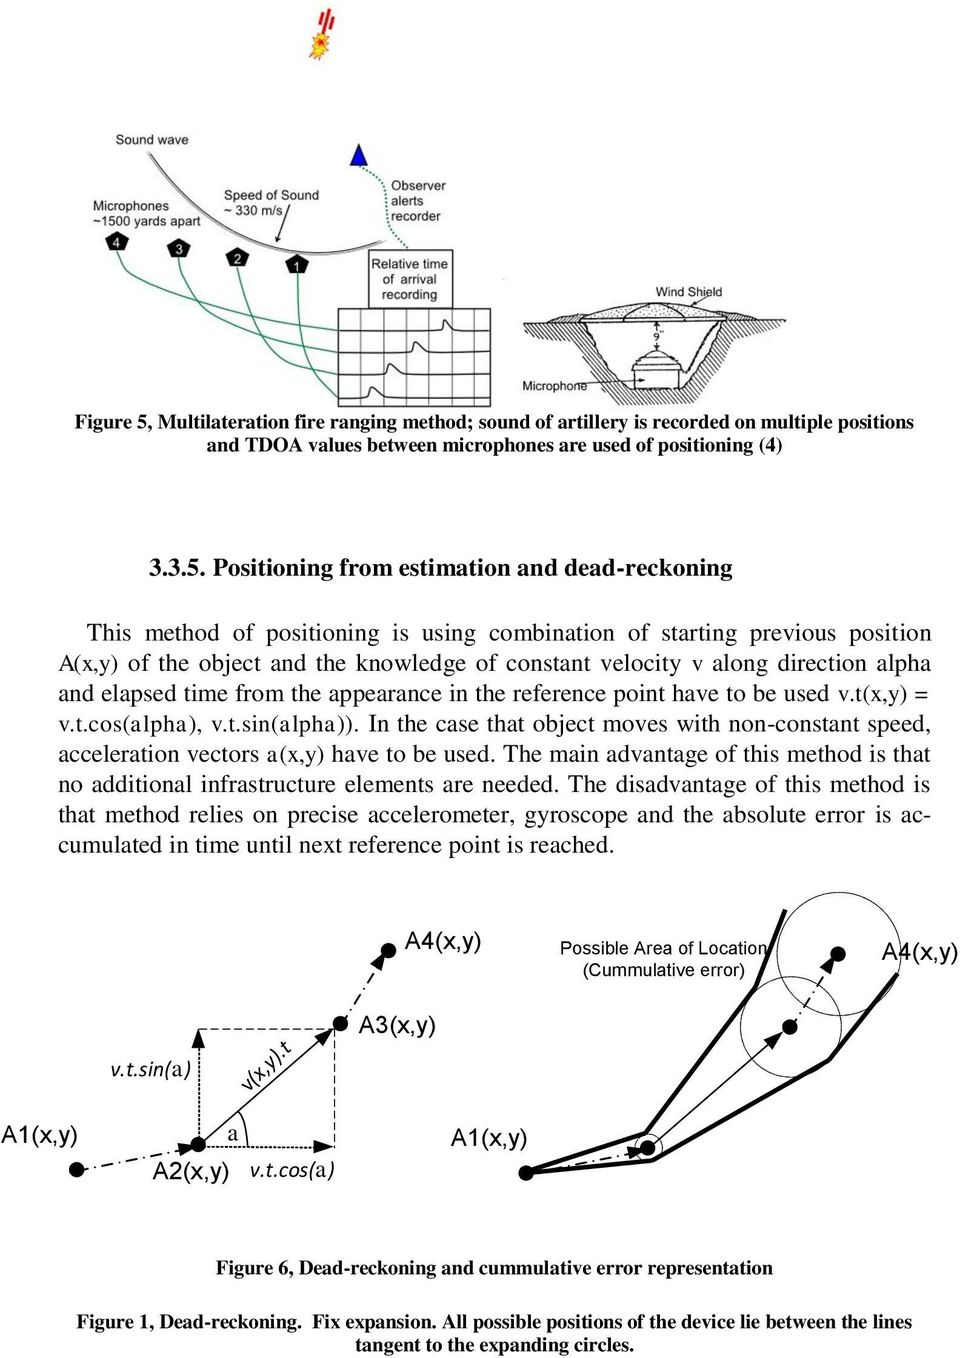 Positioning from estimation and dead-reckoning This method of positioning is using combination of starting previous position A(x,y) of the object and the knowledge of constant velocity v along